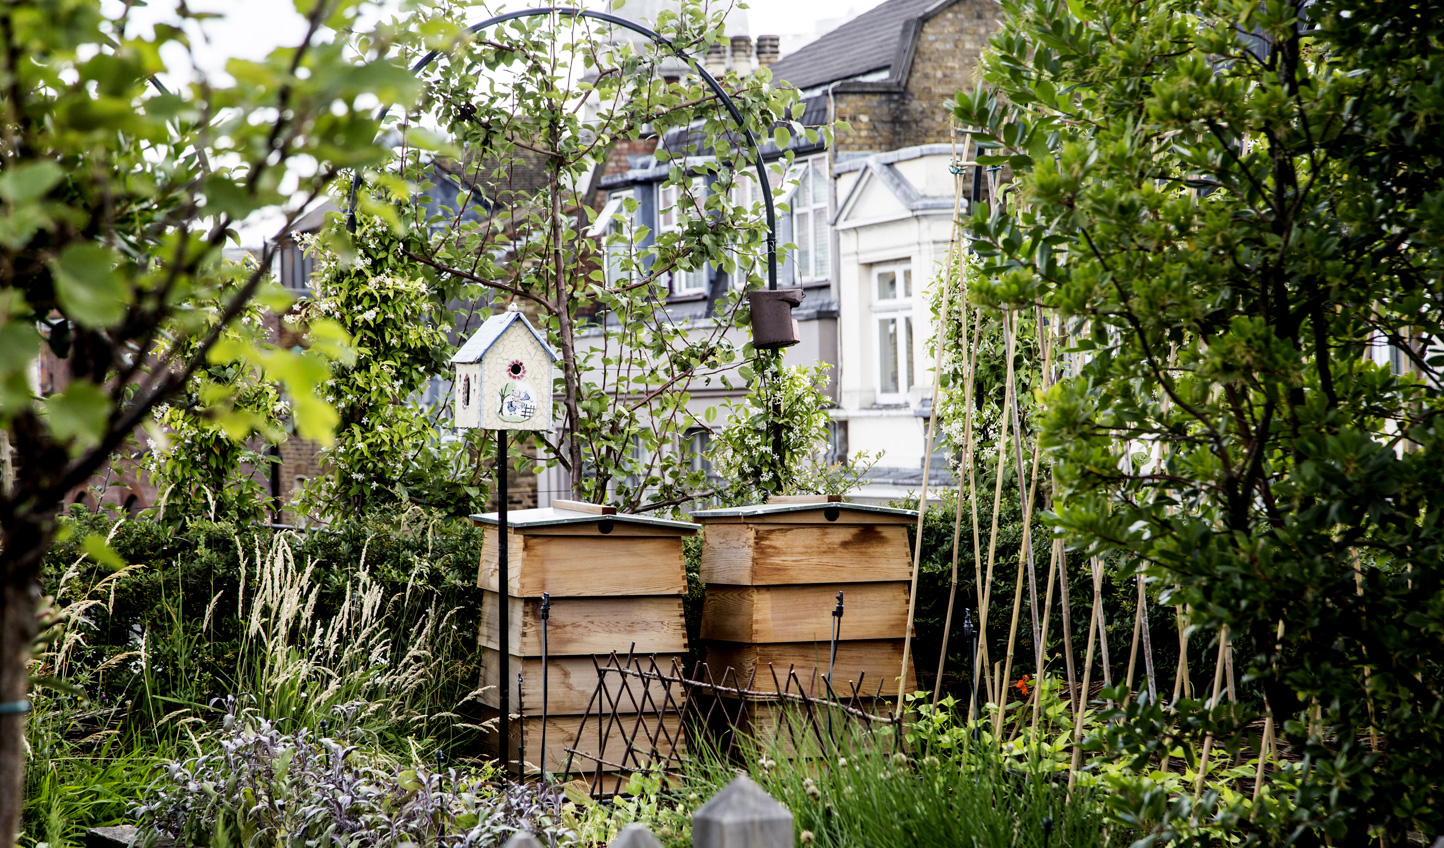 Ham Yard's little urban vegetable garden and bee hives bring some green to the city